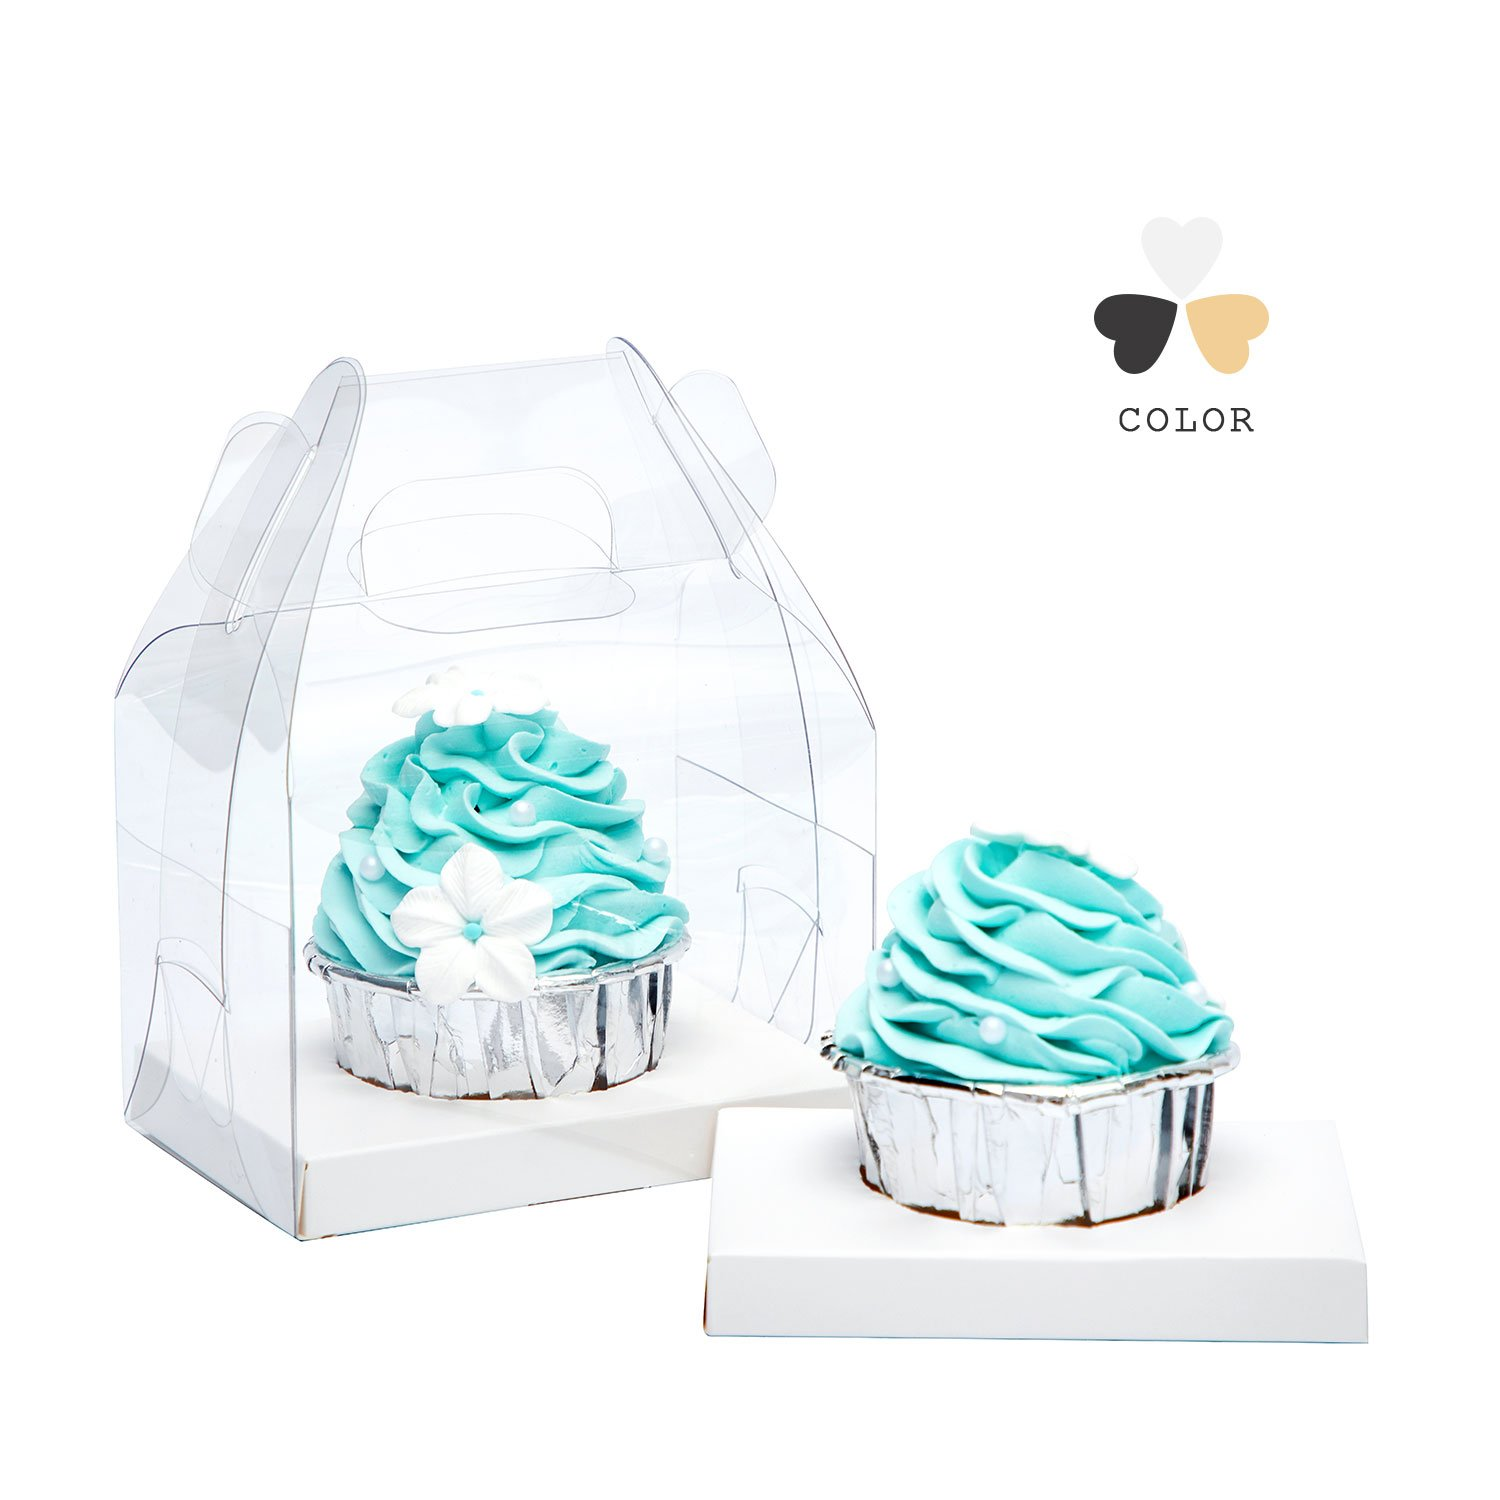 Yotruth Clear Single Cupcake Boxes With Handle and White Insert 20 Pack For Sweet Treat Box by yotruth (Image #8)